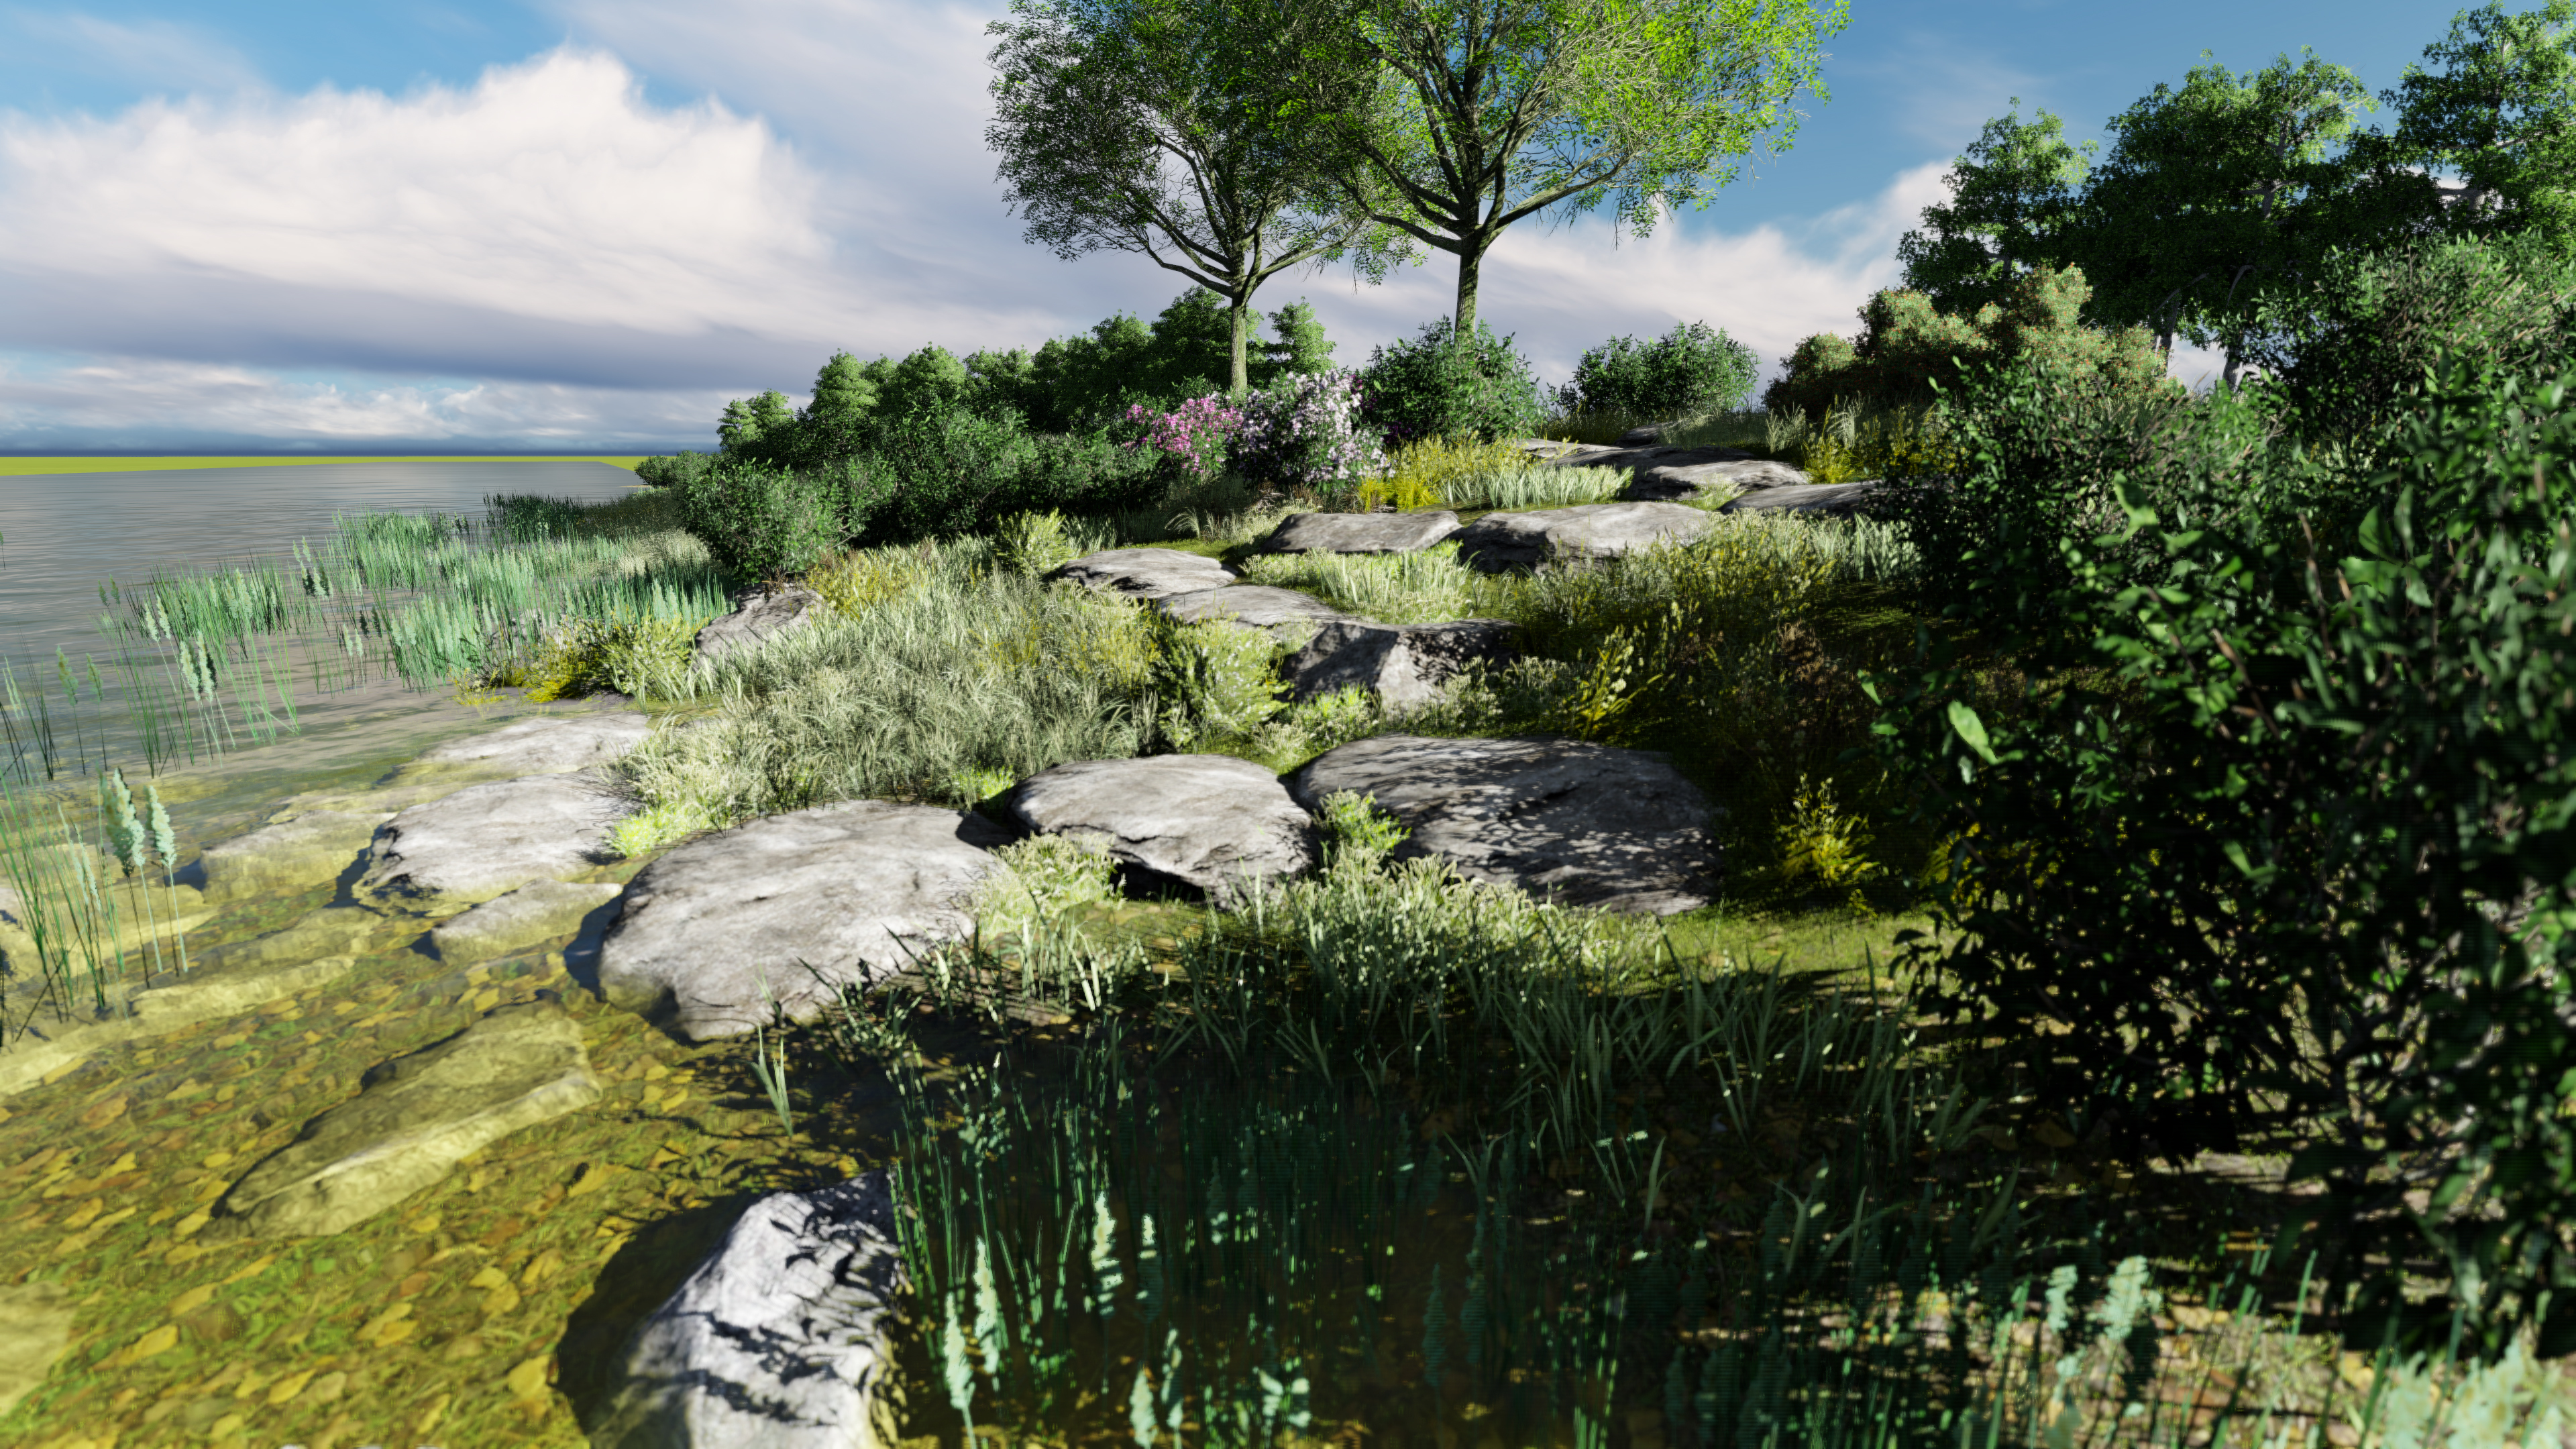 A rendering of one of the shoreline enhancements that is part of the restoration project for the bay and Kateri Tekakwitha Island. (Ka'nhehsí:io Deer/CBC)